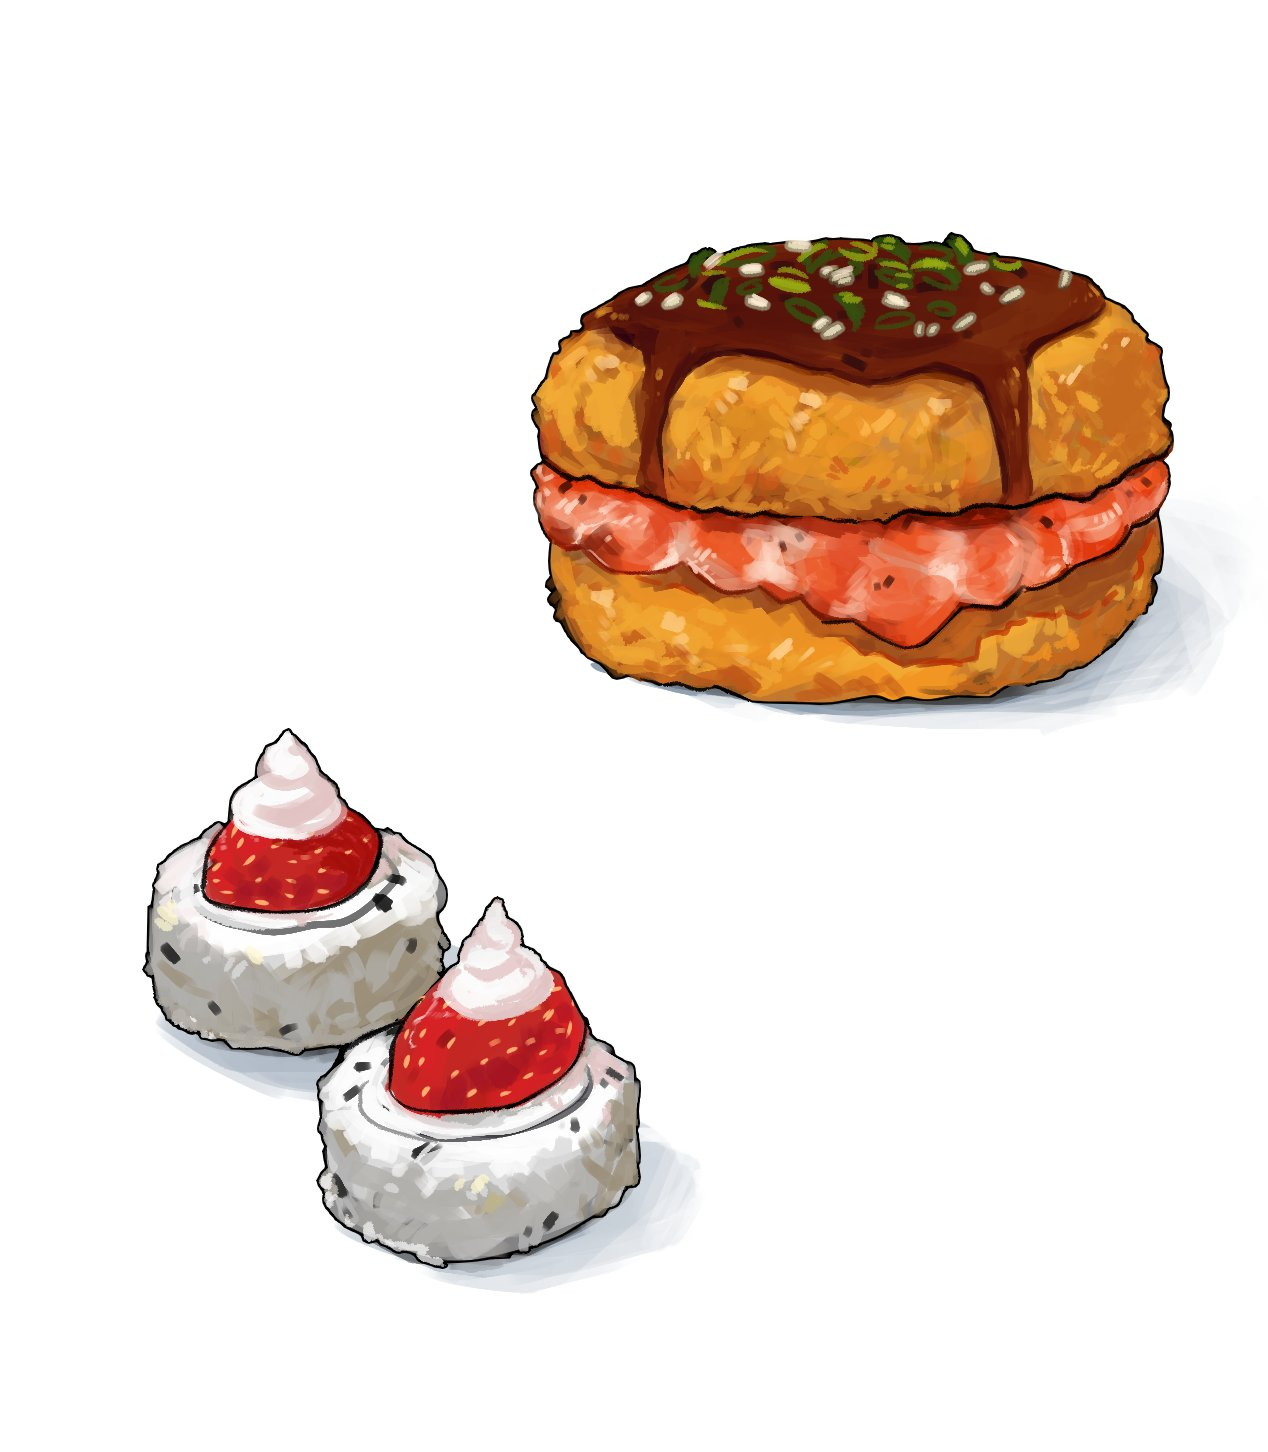 cream fish food food_focus fruit hamburger highres makizushi no_humans ocatg original rice sauce simple_background spring_onion still_life strawberry sushi white_background